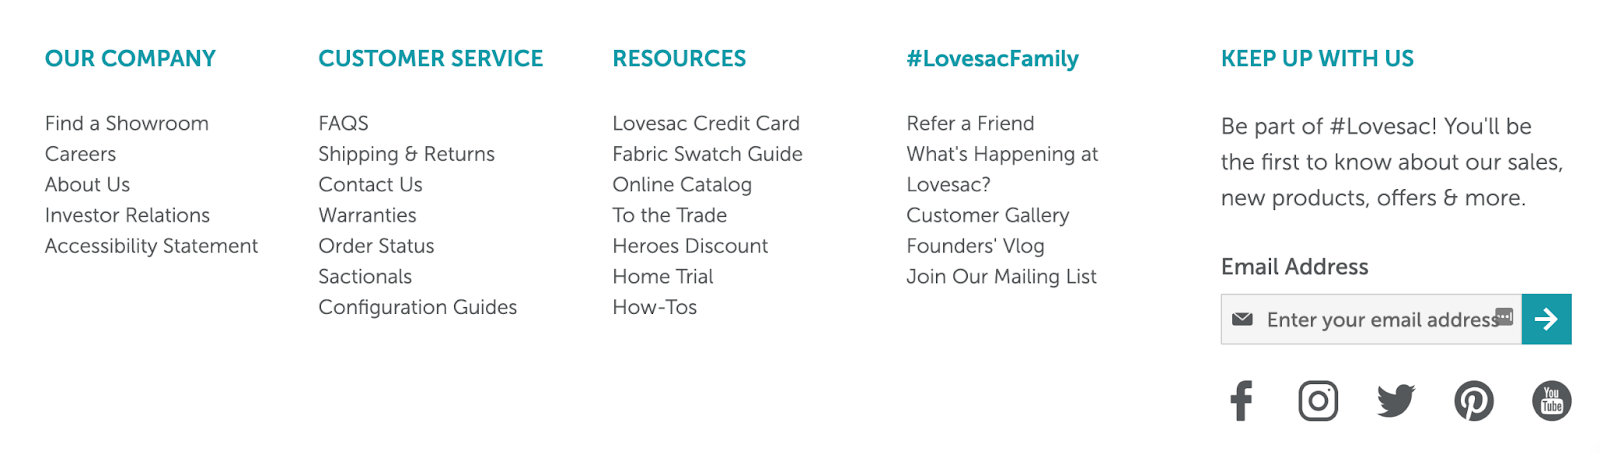 lovesac website homepage with resources and CTAs in the footer